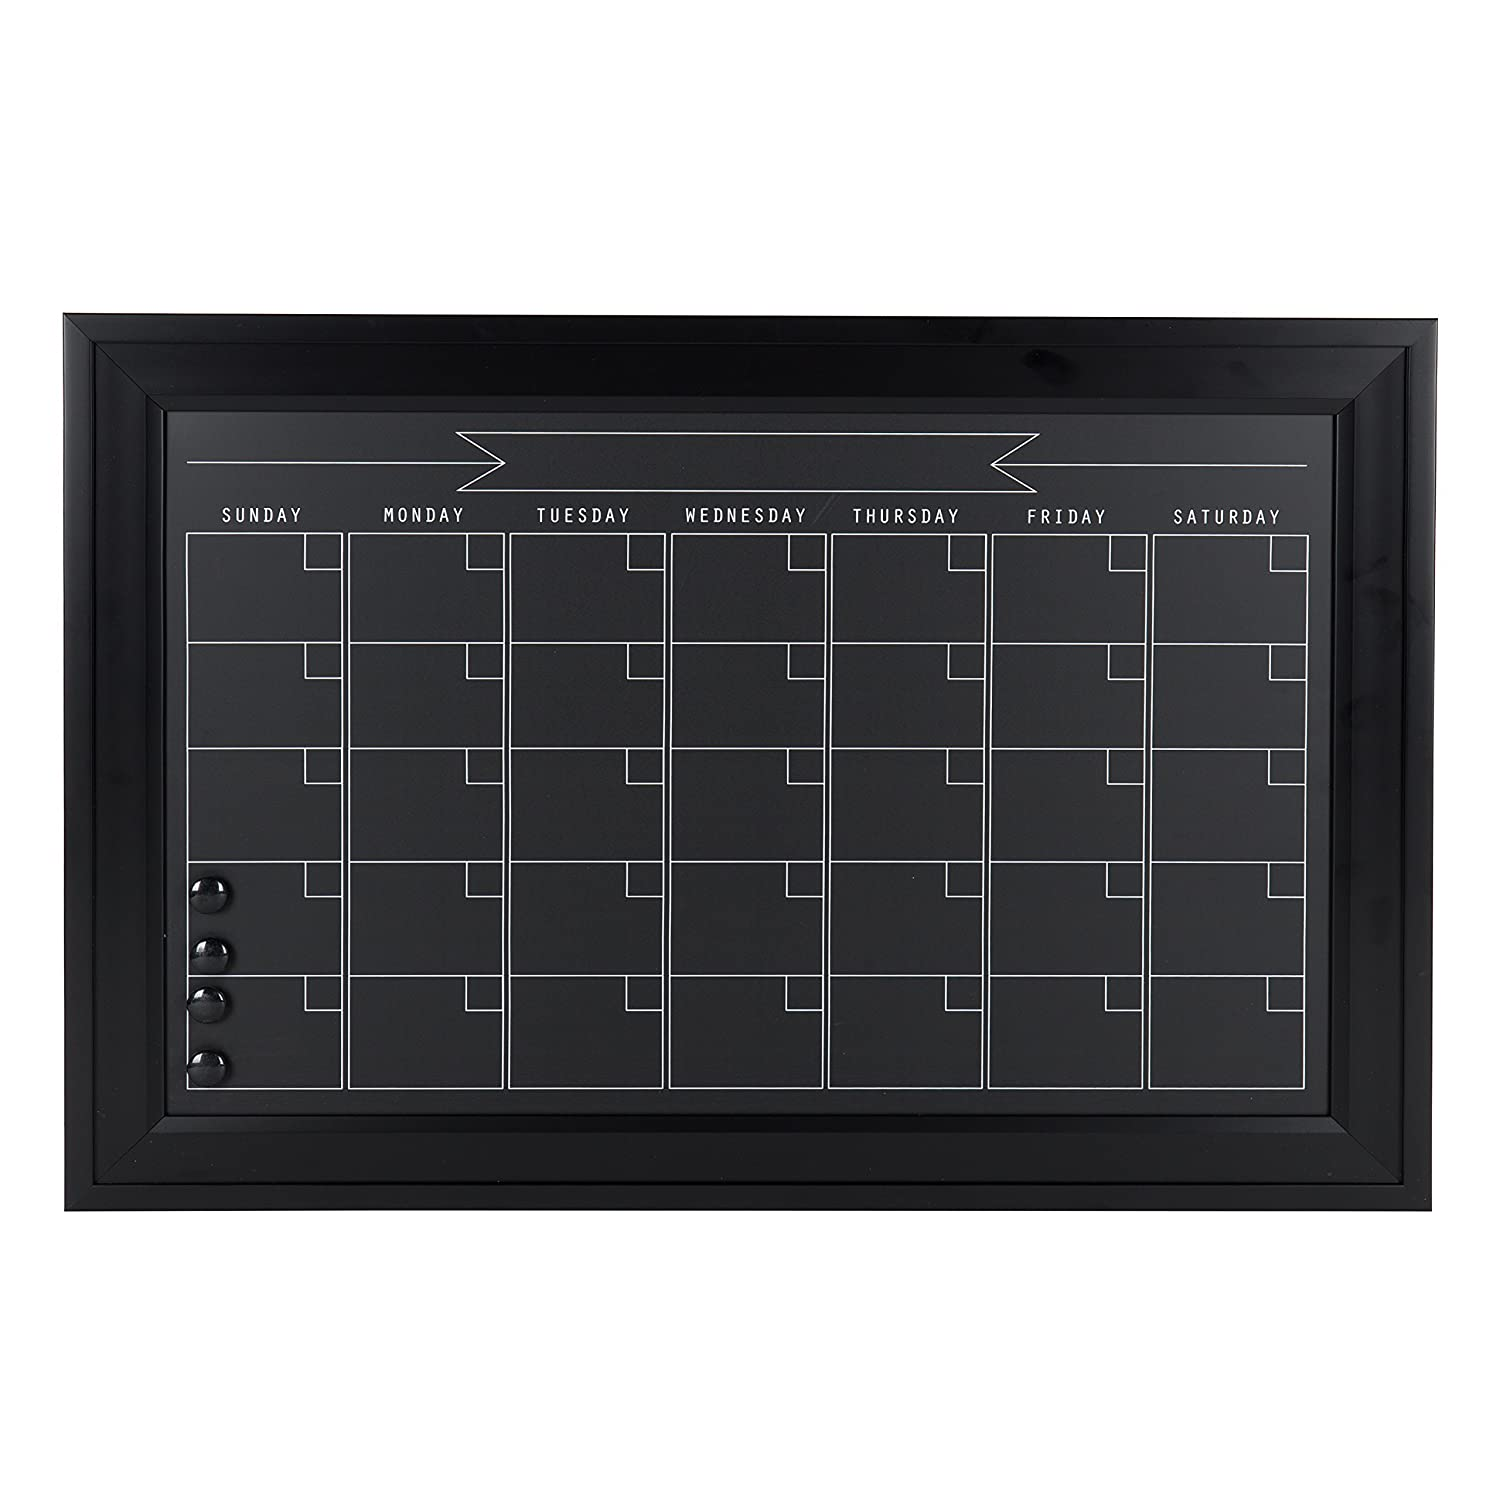 DesignOvation Bosc Framed Magnetic Chalkboard Monthly Calendar, 23.5x29.5, Gray Uniek 211500